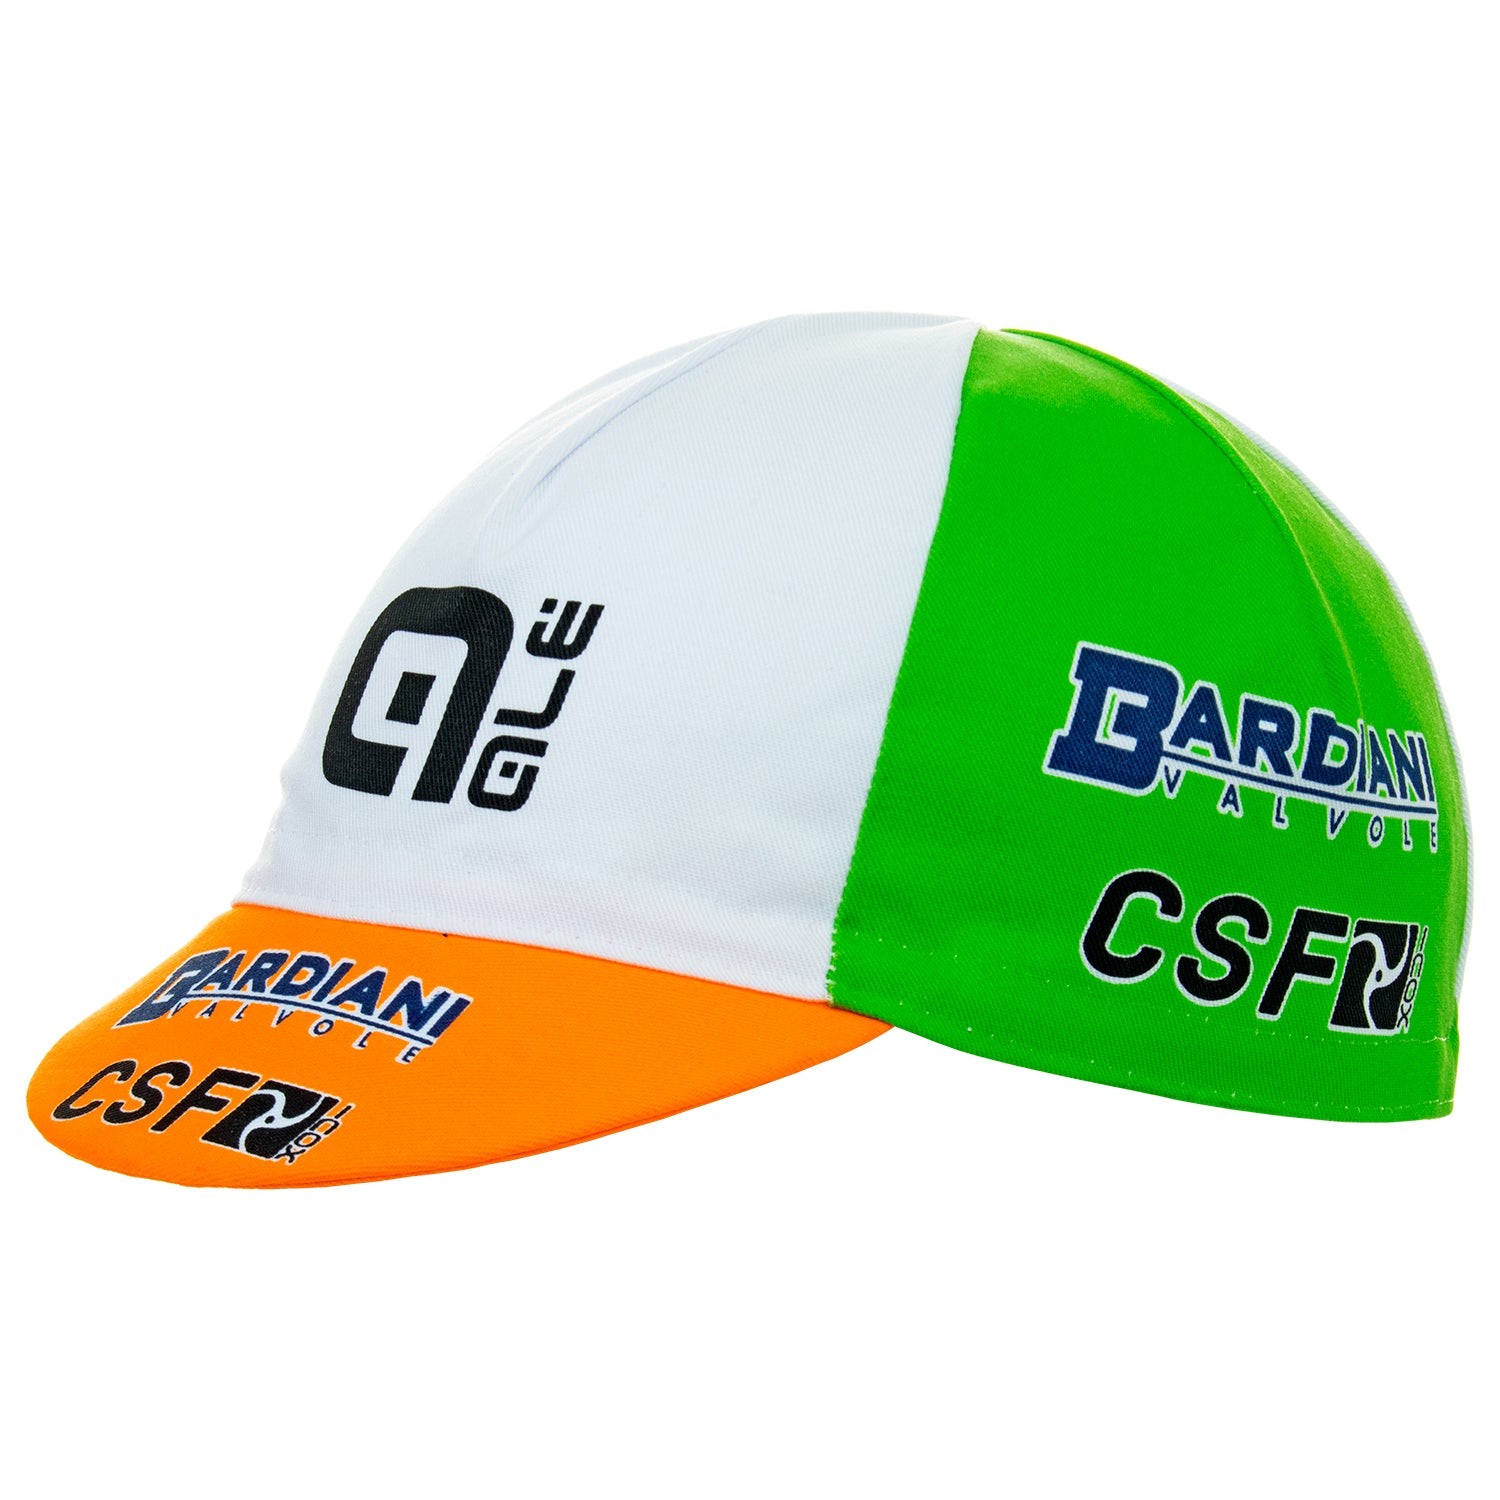 Bardiani CSF Guerciotti 2019 Team Cotton Cycling Cap